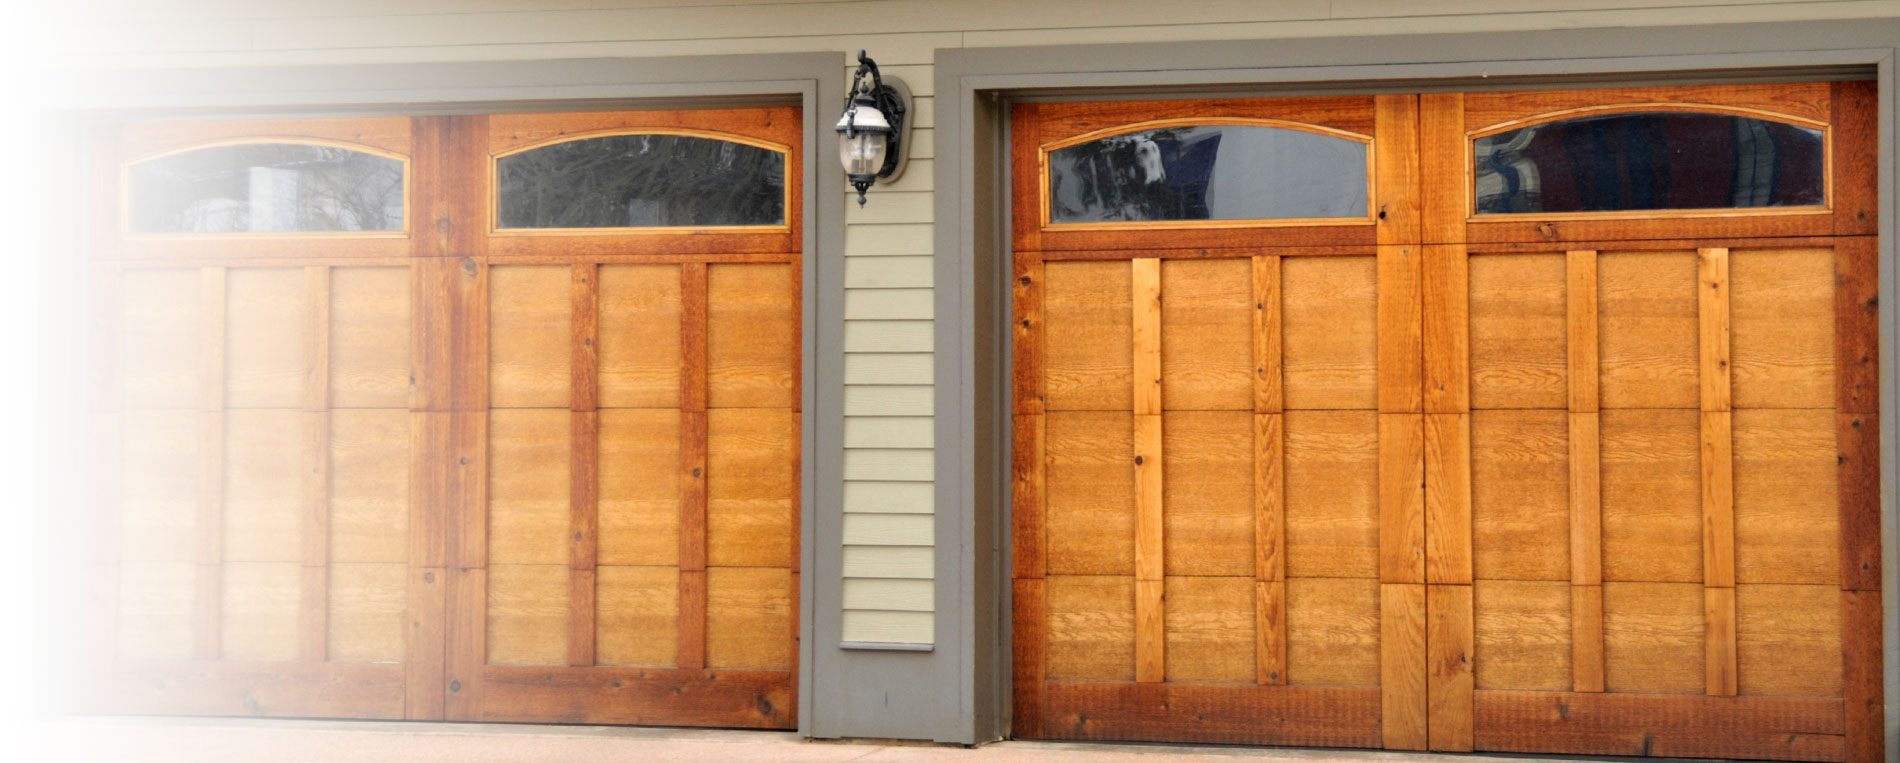 Selecting the Perfect Material for Your Garage Door